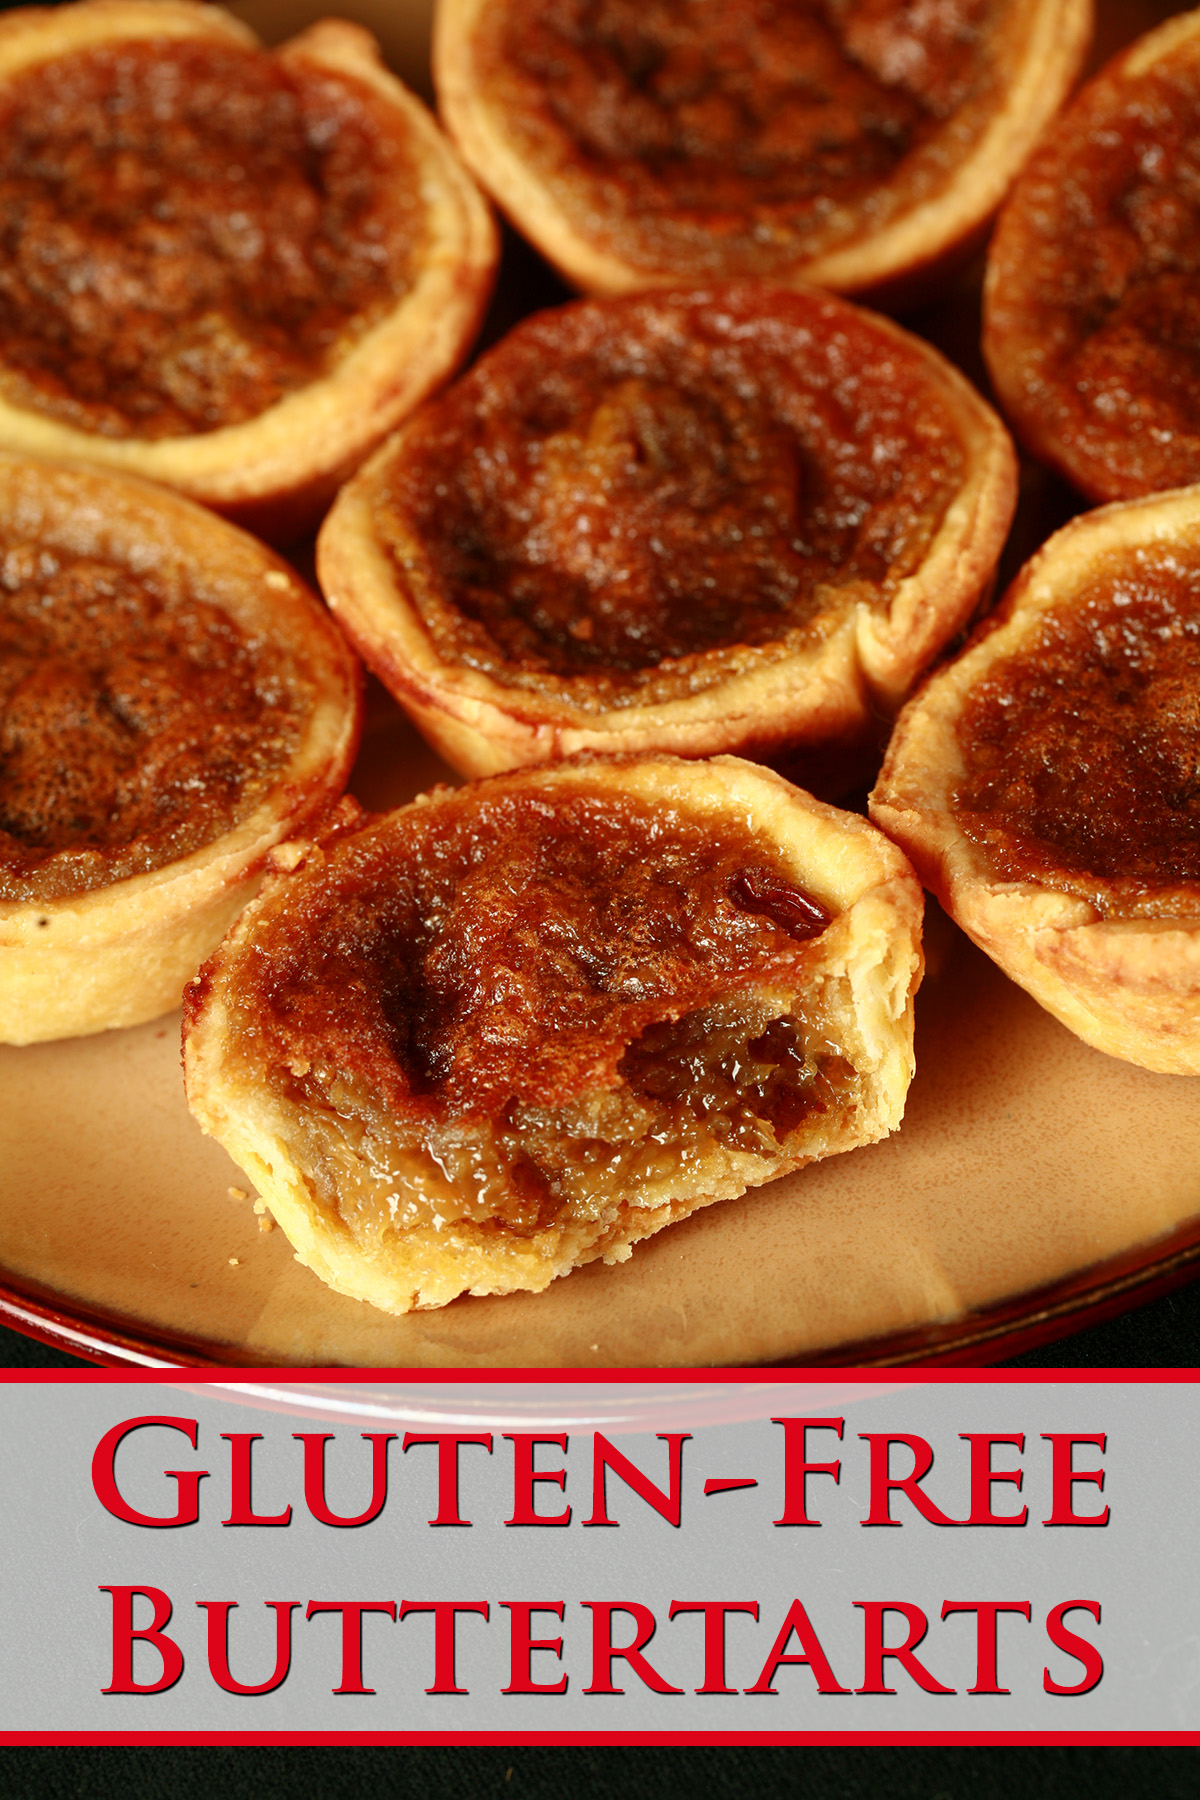 A brown plate is crowded with gluten-free buttertarts - mini tarts with a gooey sugar filling and raisins